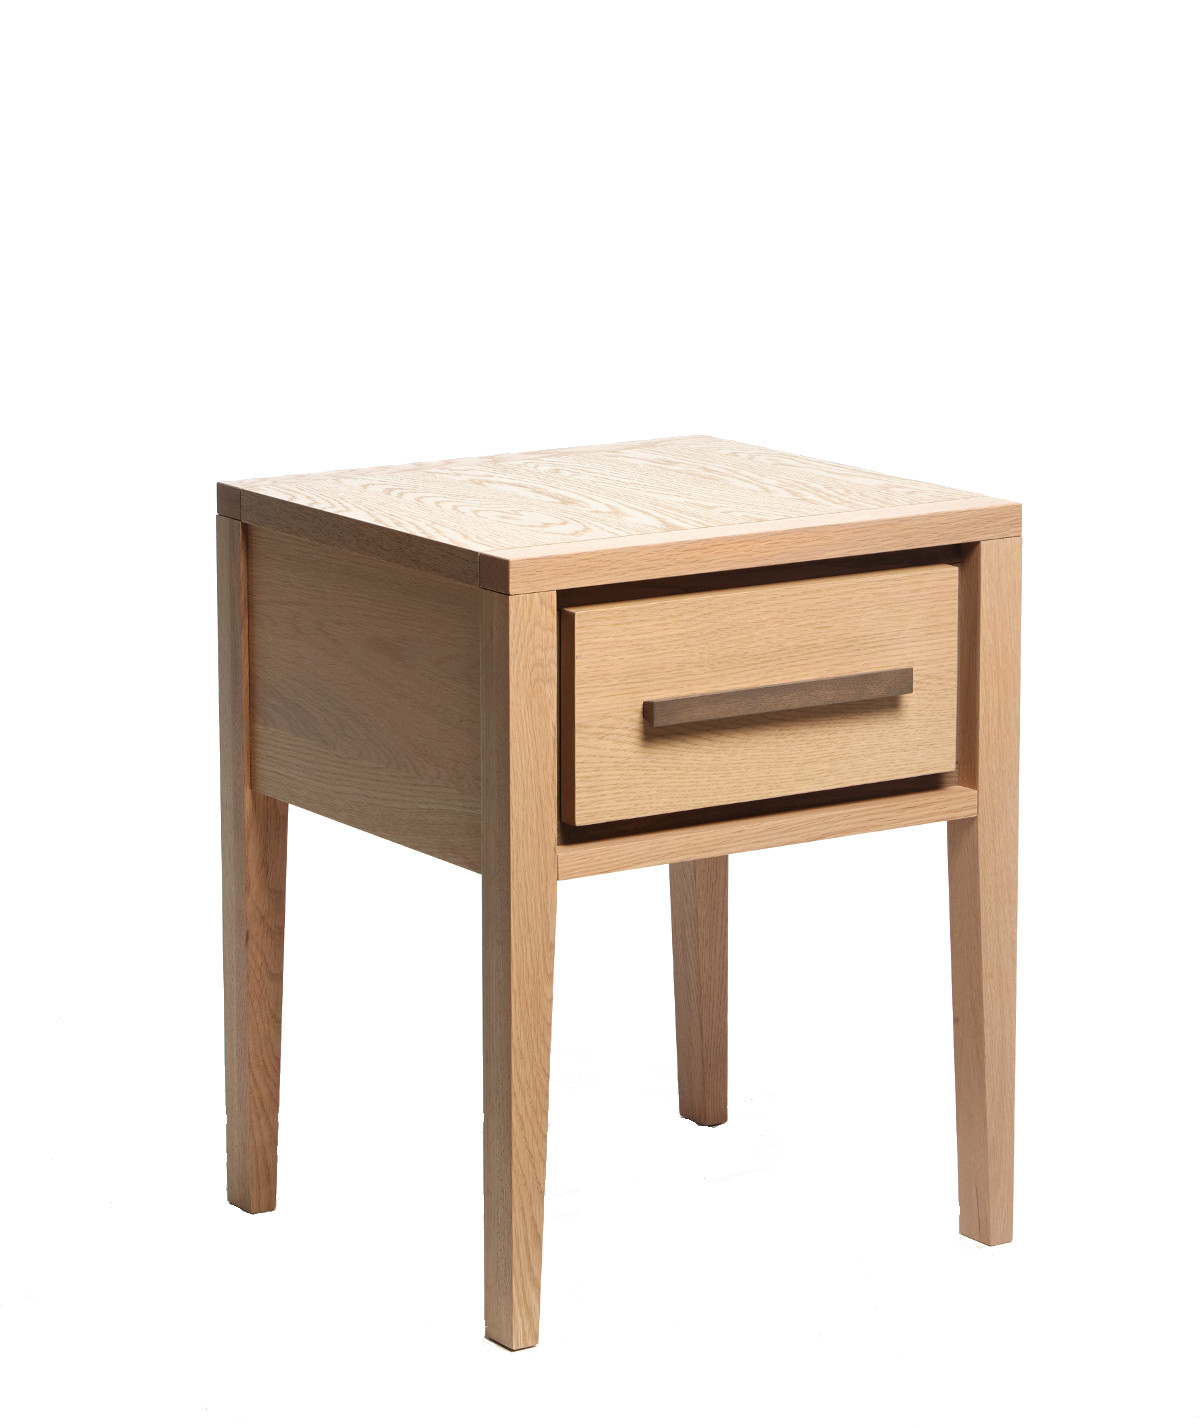 Lombardy 1 Drawer Bedside Chest